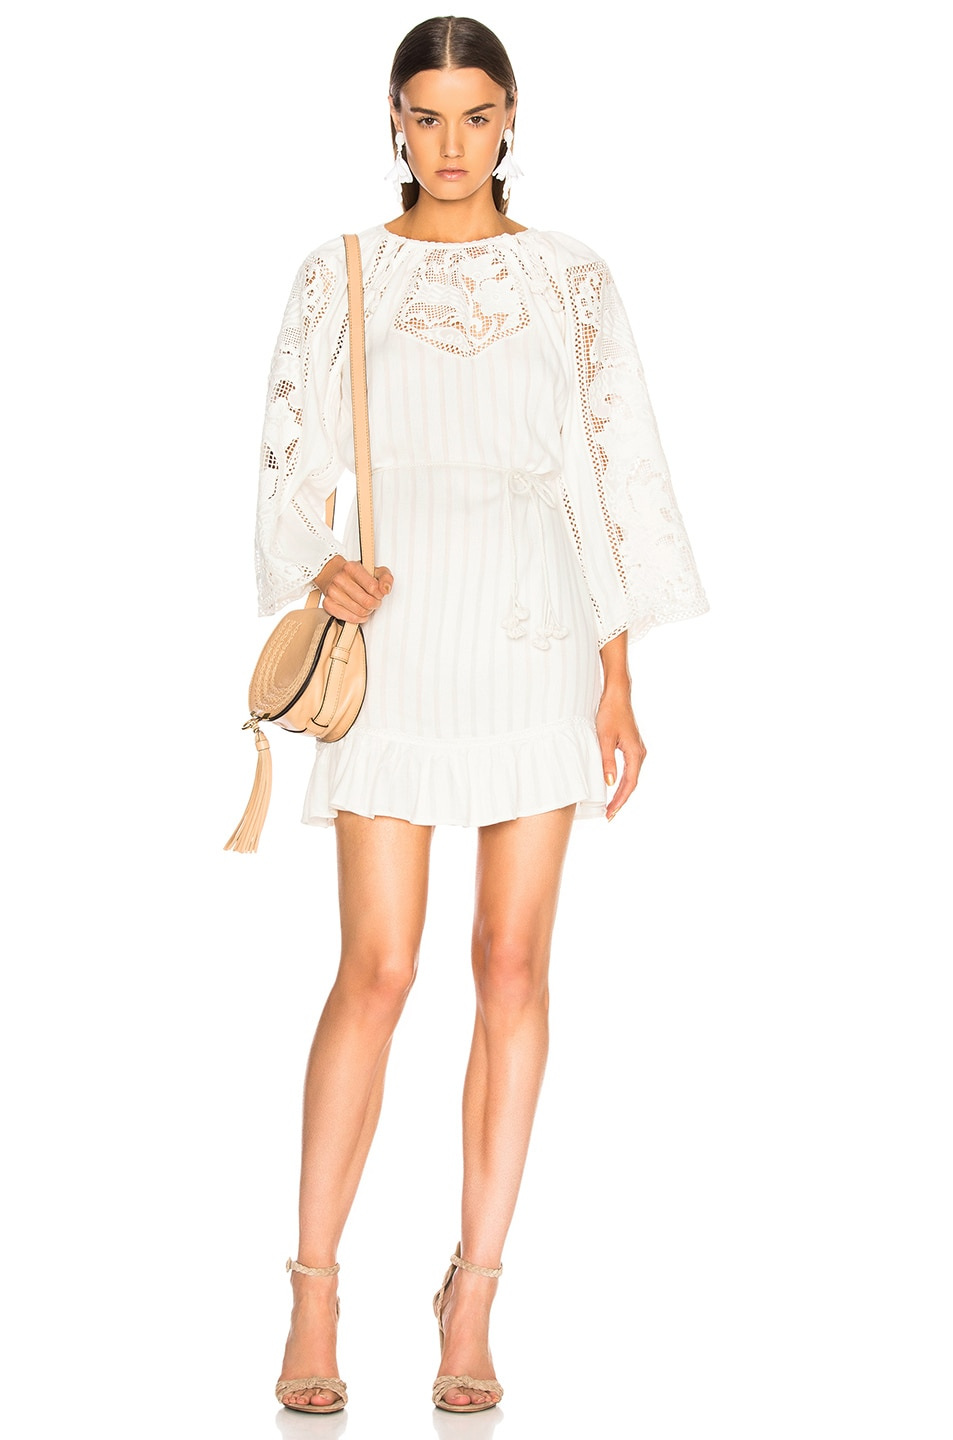 Ulla Johnson Ezra Dress in White